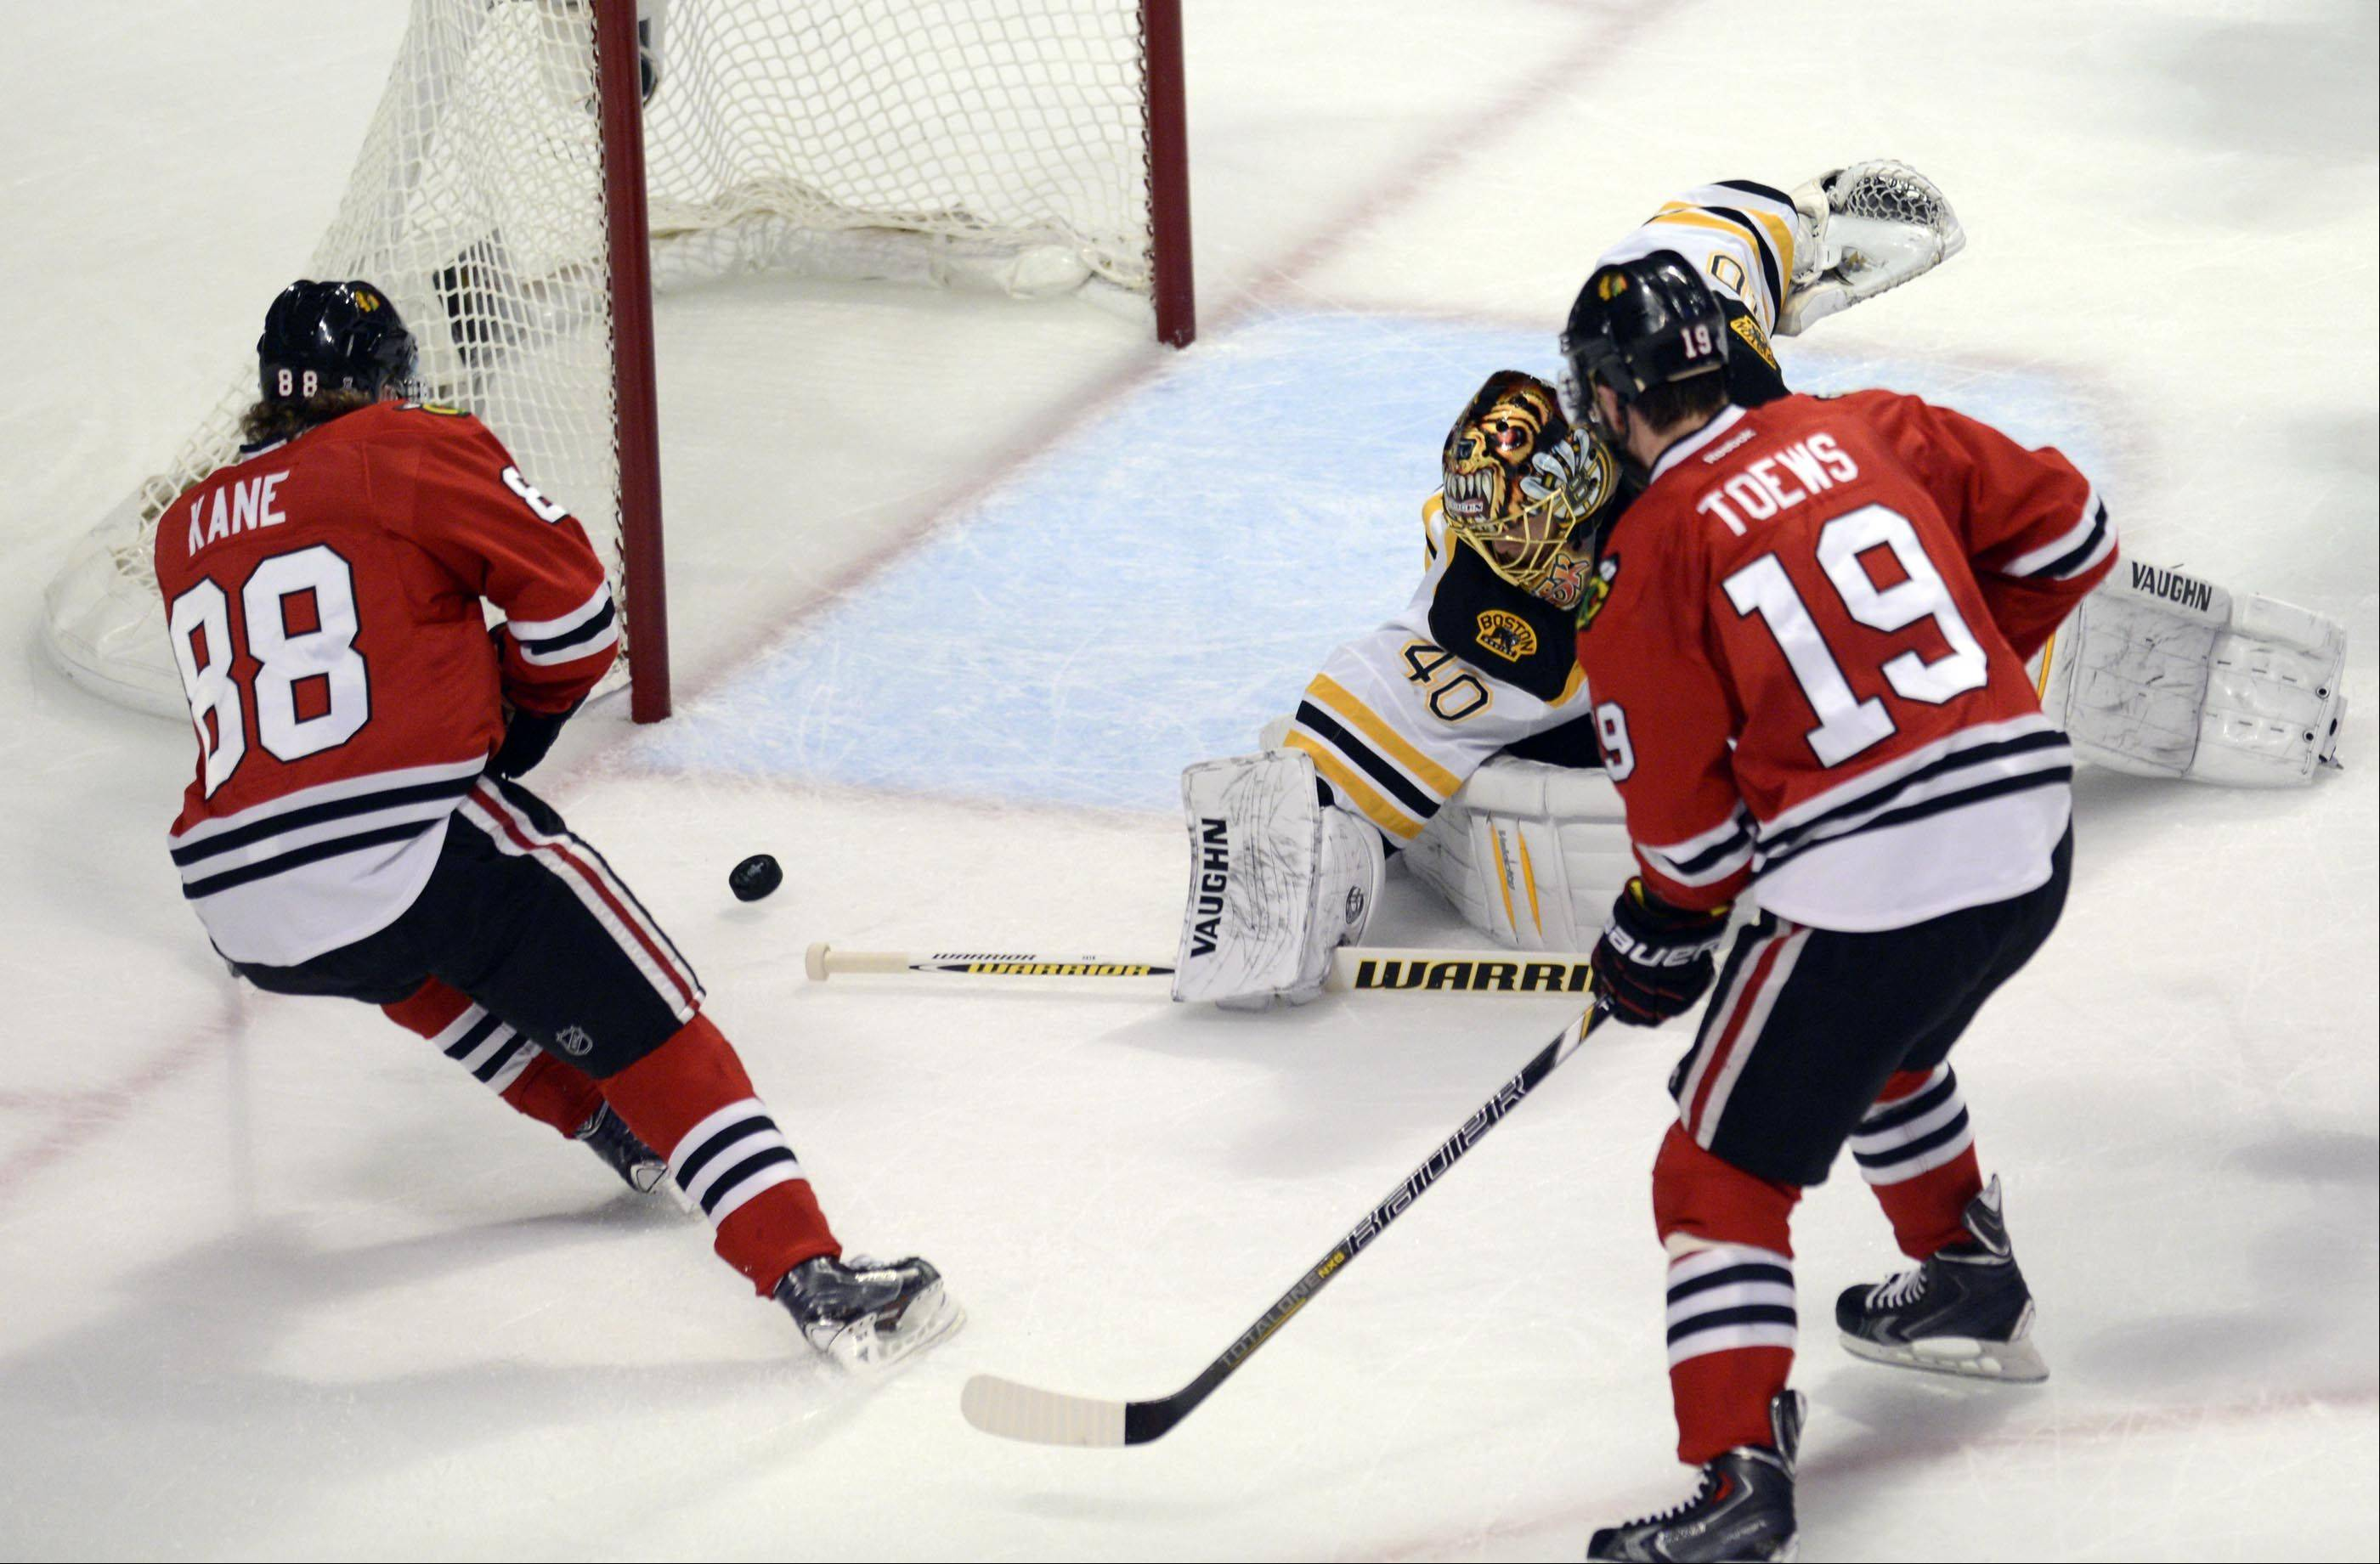 Chicago Blackhawks center Jonathan Toews passes the puck to teammate Patrick Kane who scores in the first period against Boston Bruins goalie Tuukka Rask Saturday in Game 5 of the Stanley Cup Finals at the United Center in Chicago.